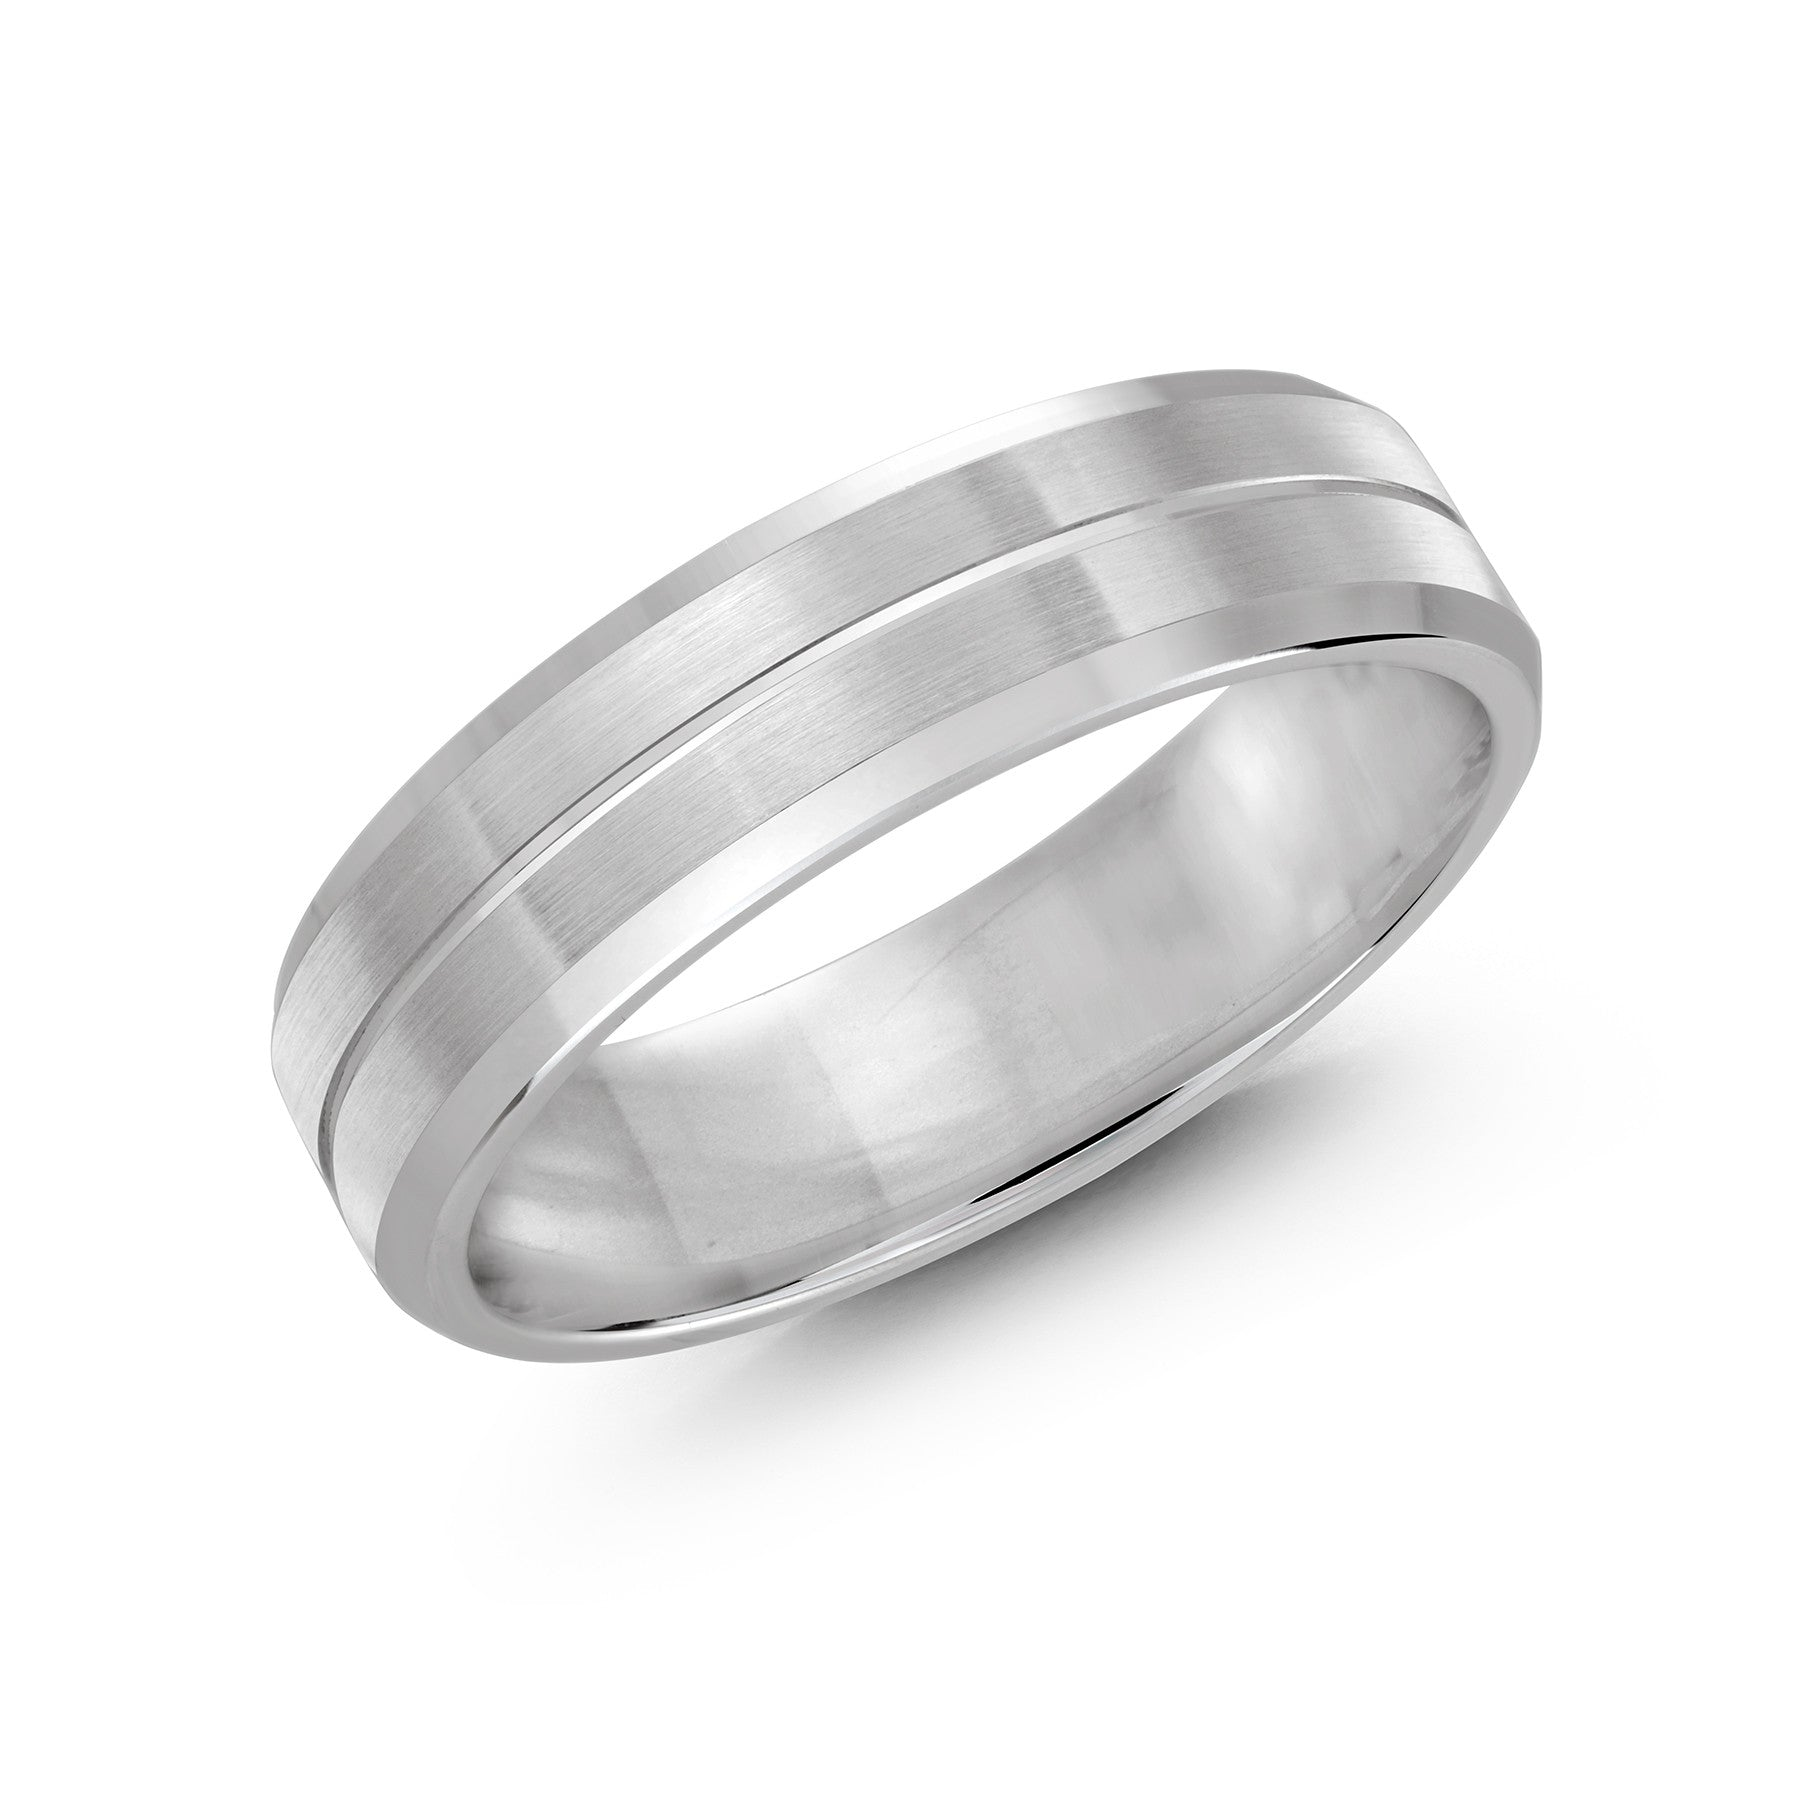 Malo Mens White Gold Wedding Band With Satin Finish